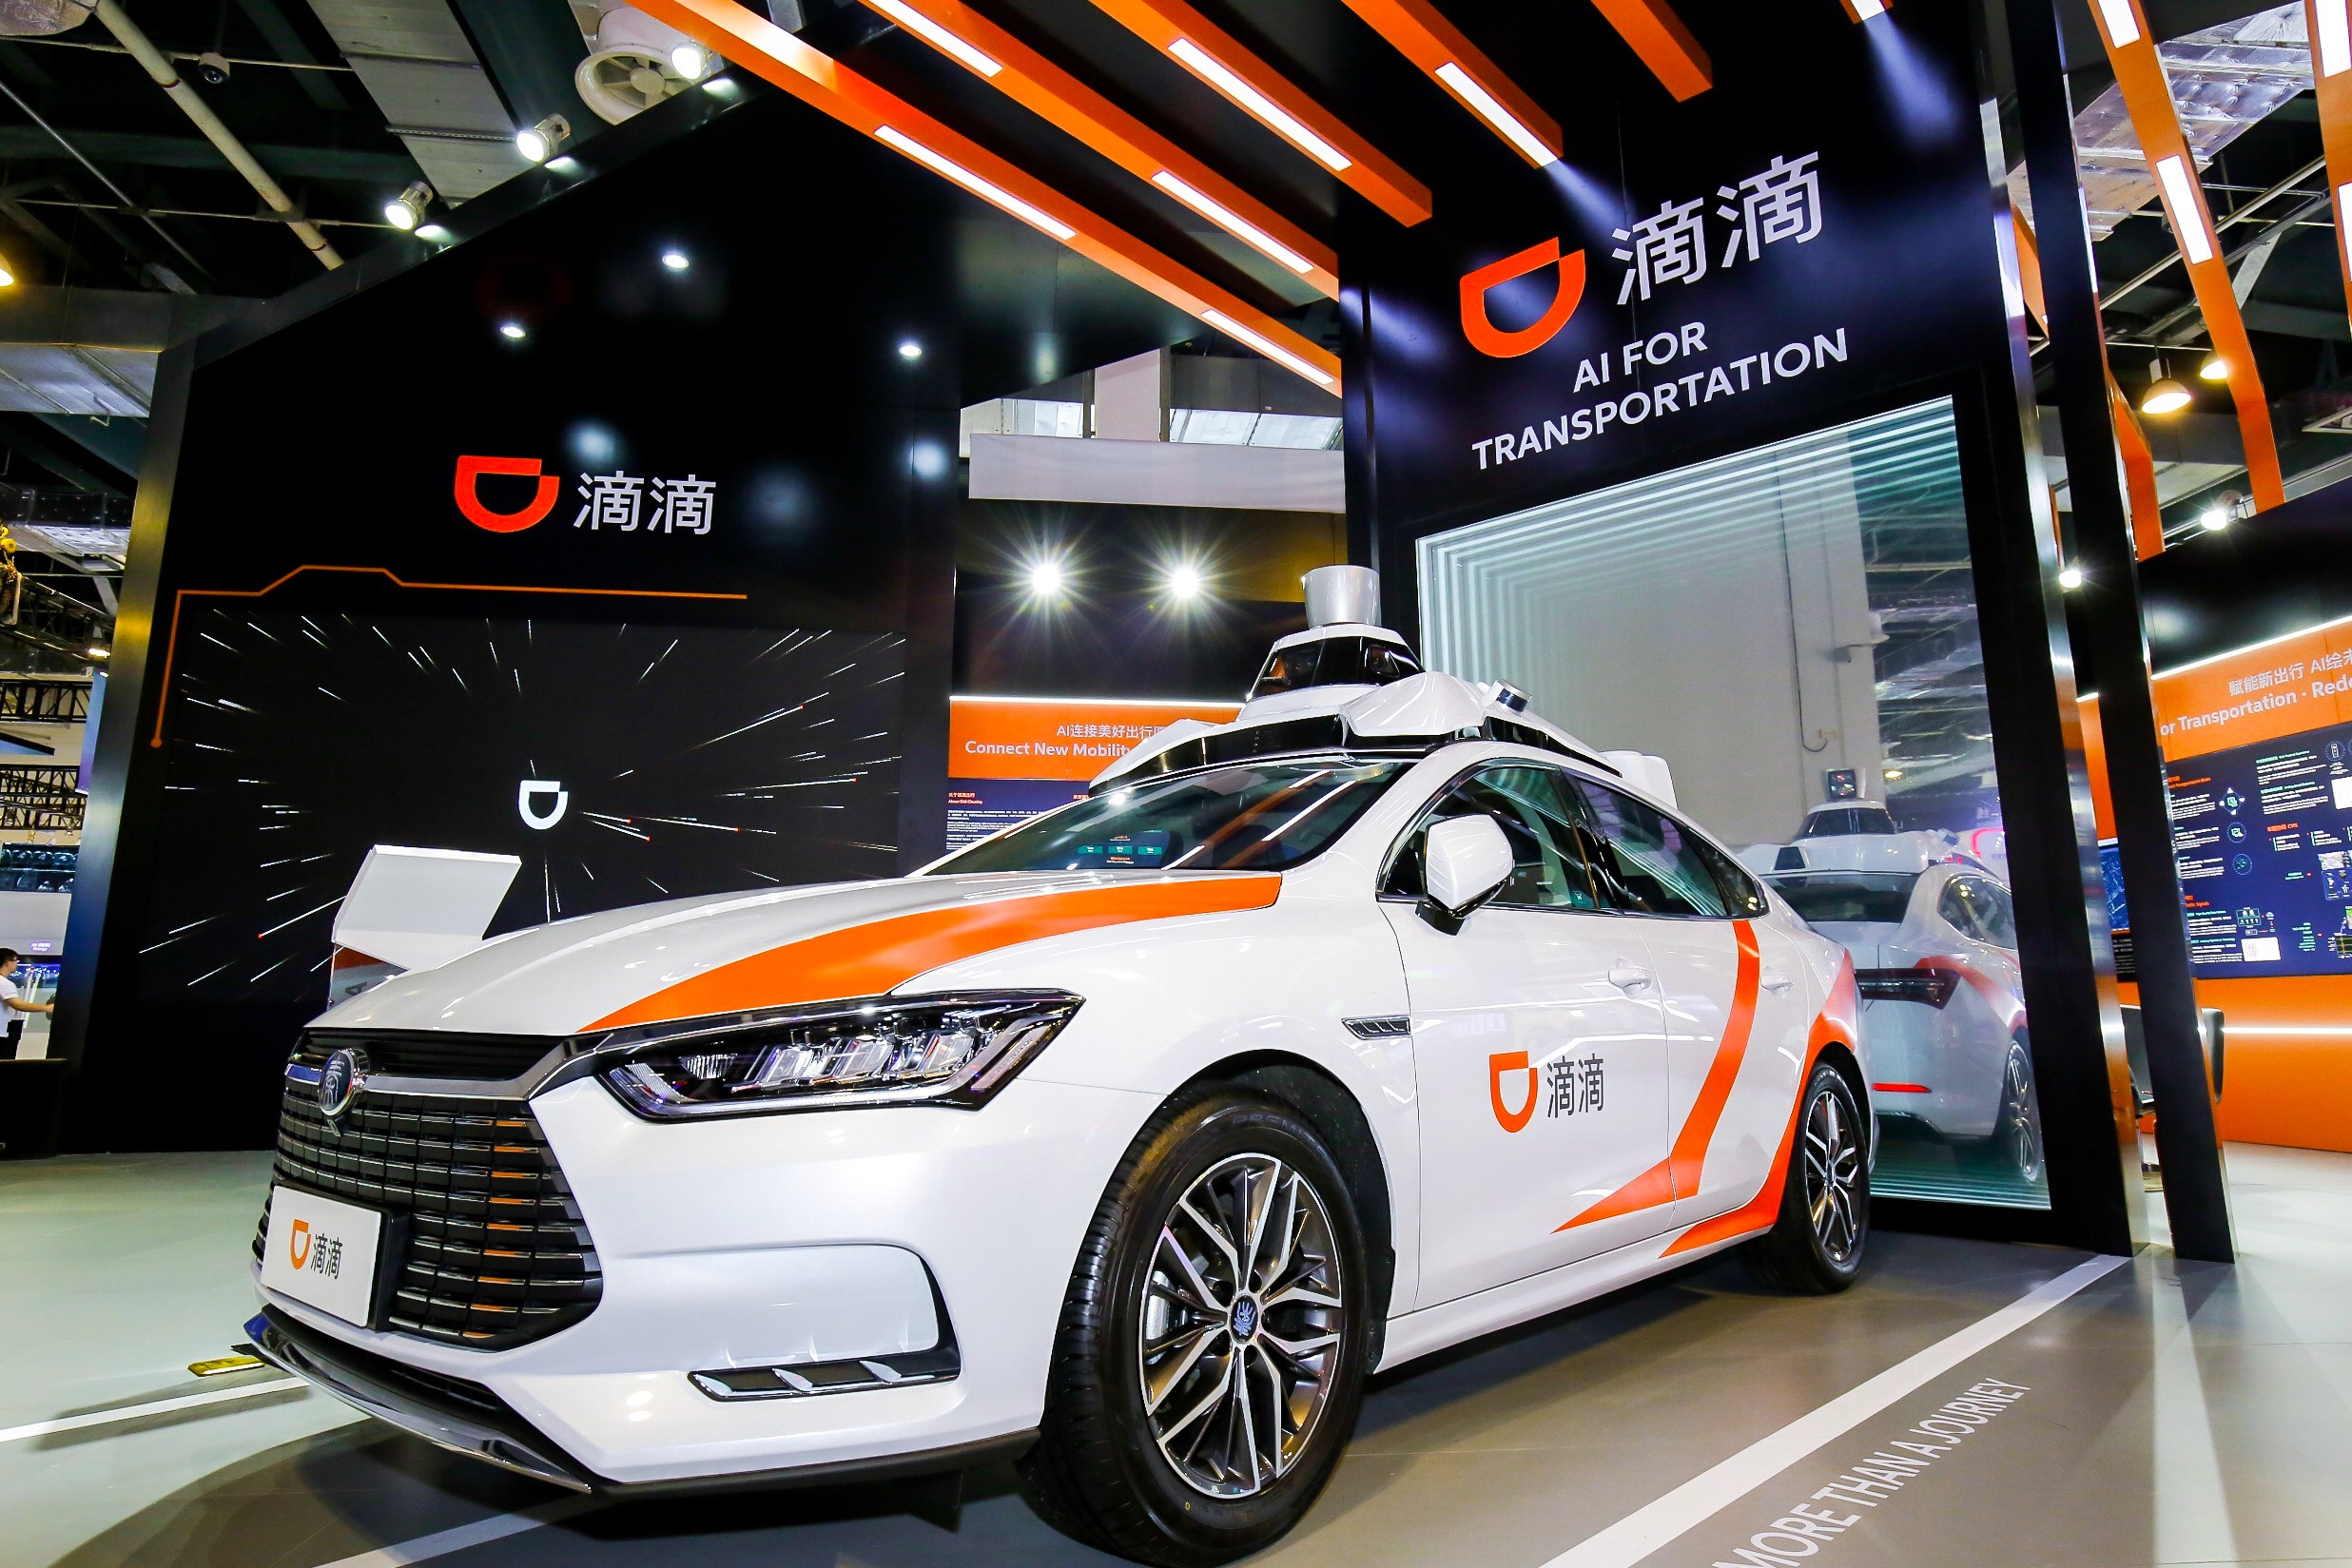 DiDi Completes Over US$500 Million Fundraising Round for Its Autonomous Driving Subsidiary led by SoftBank Vision Fund 2